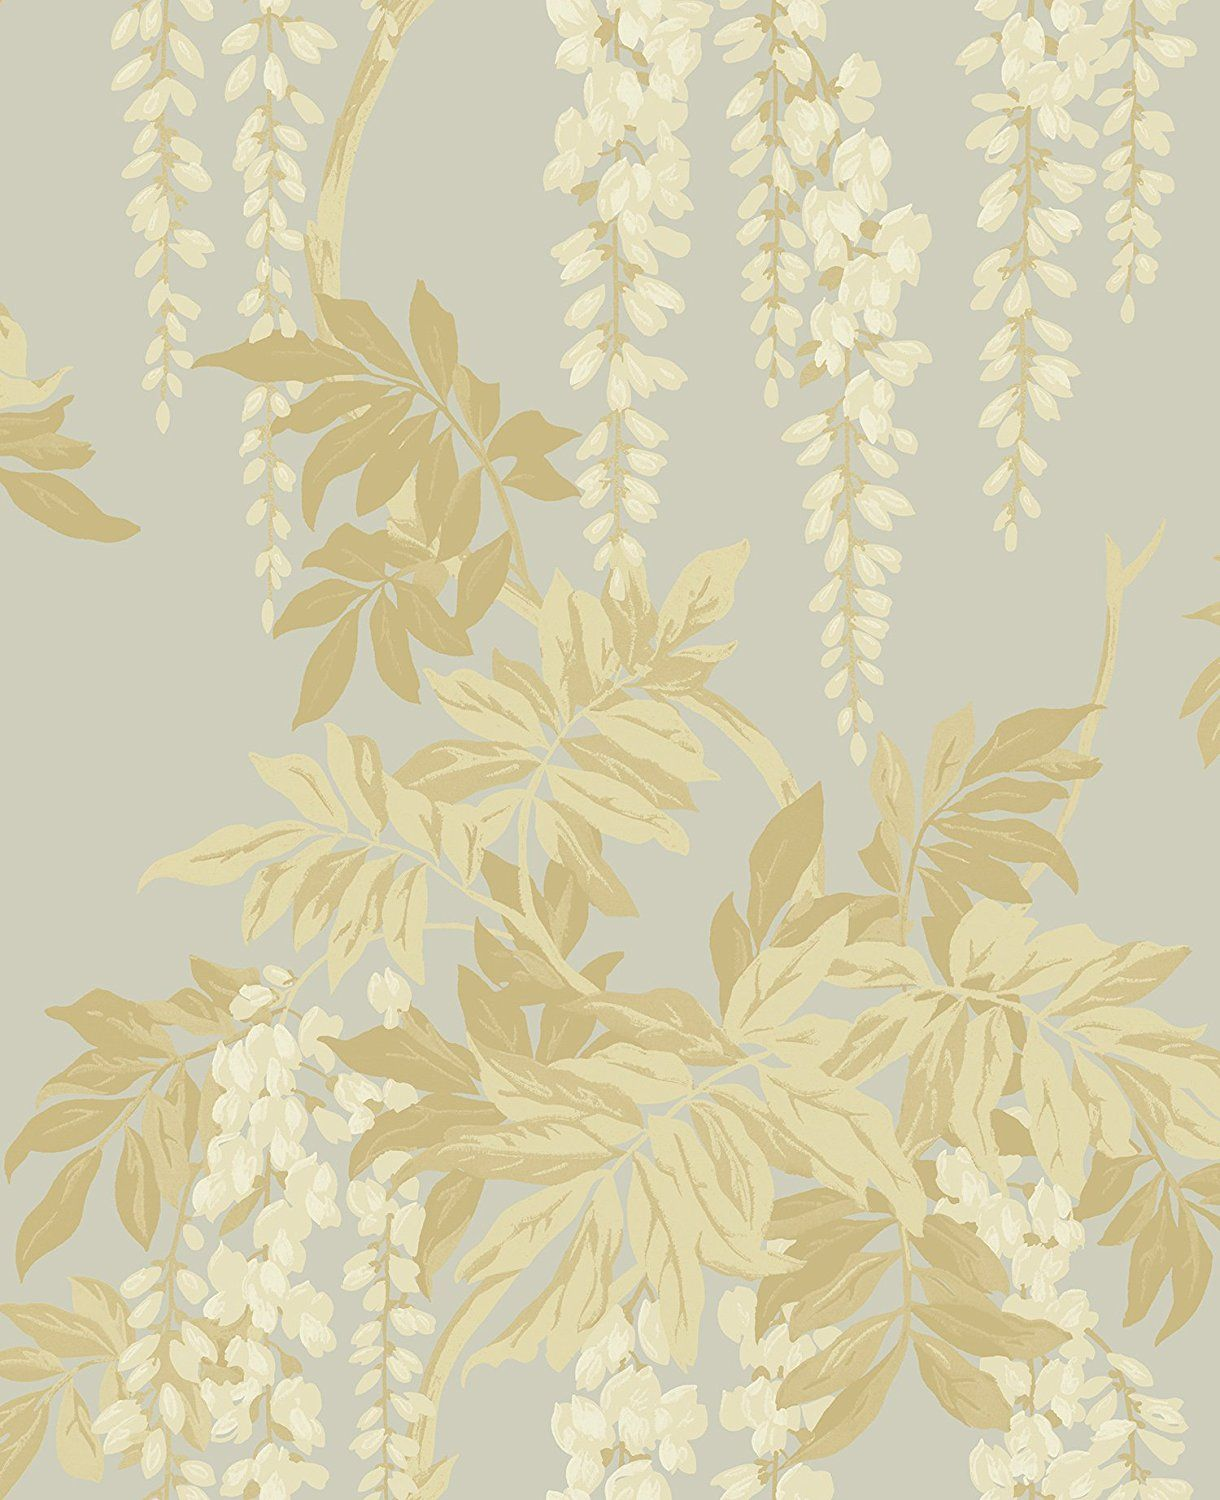 Mayflower Wallpaper Wisteria (Gold Silver) Victorian